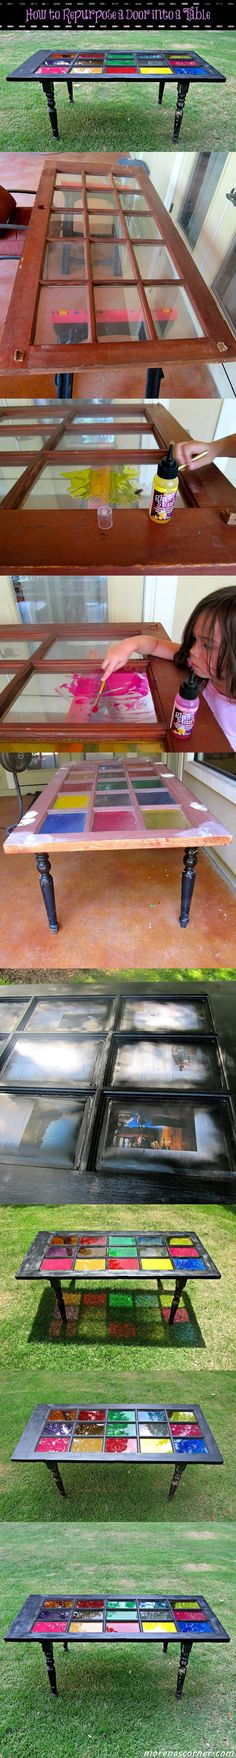 How to Repurpose a Door into a Table